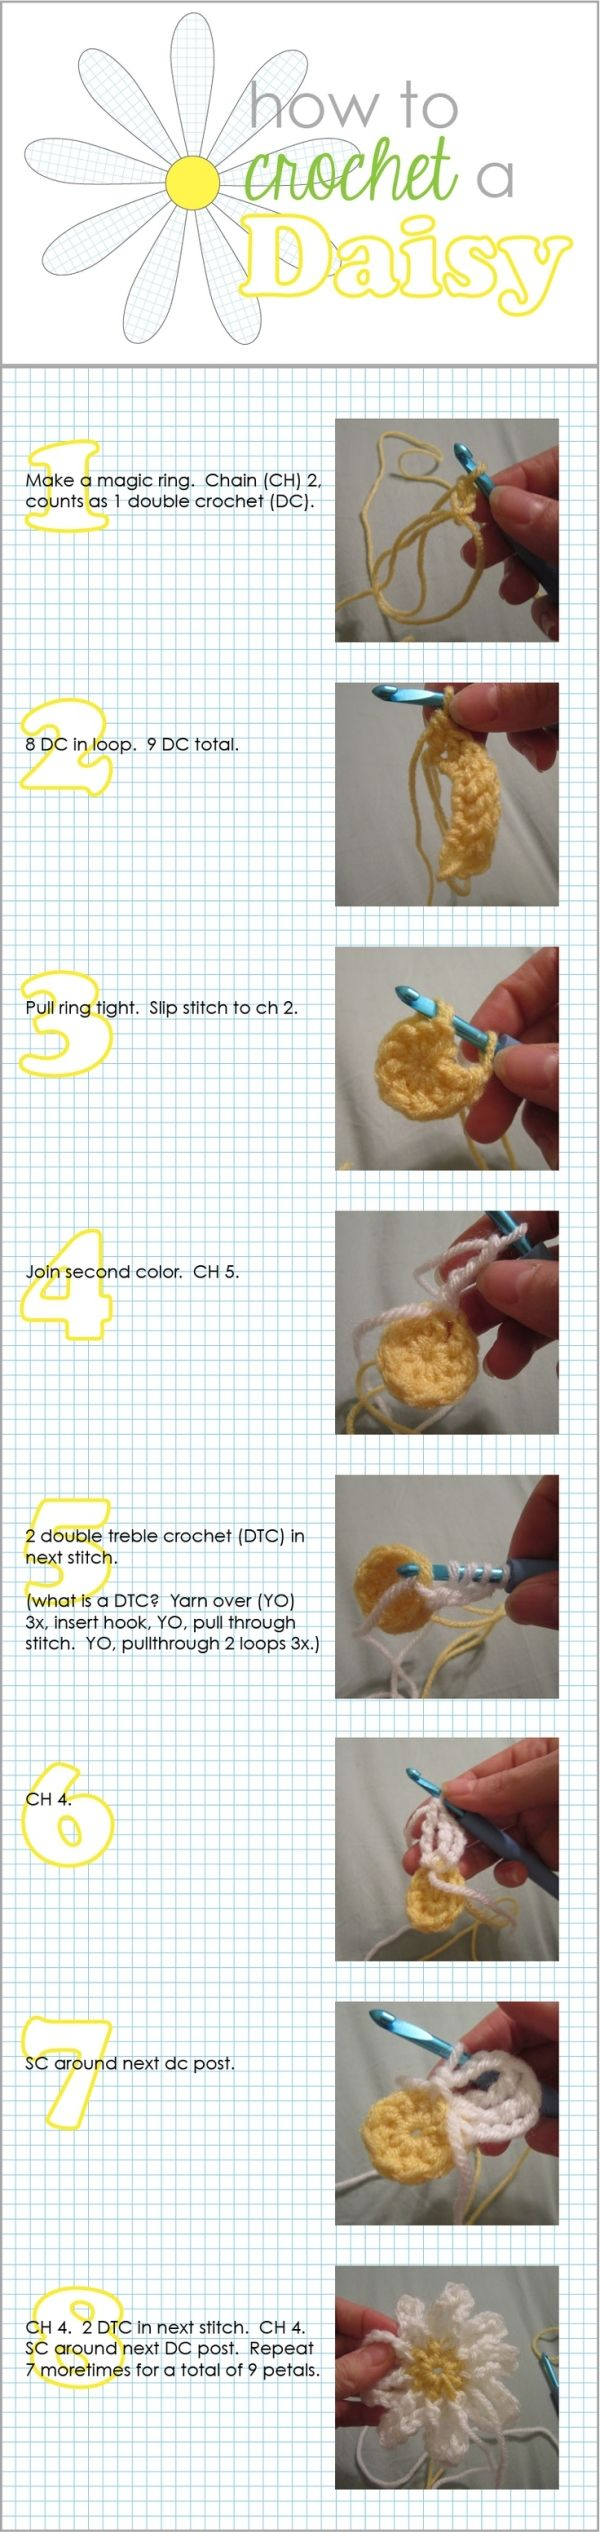 How to crochet a daisy by mavrica | Craftiness | Pinterest | Flores ...